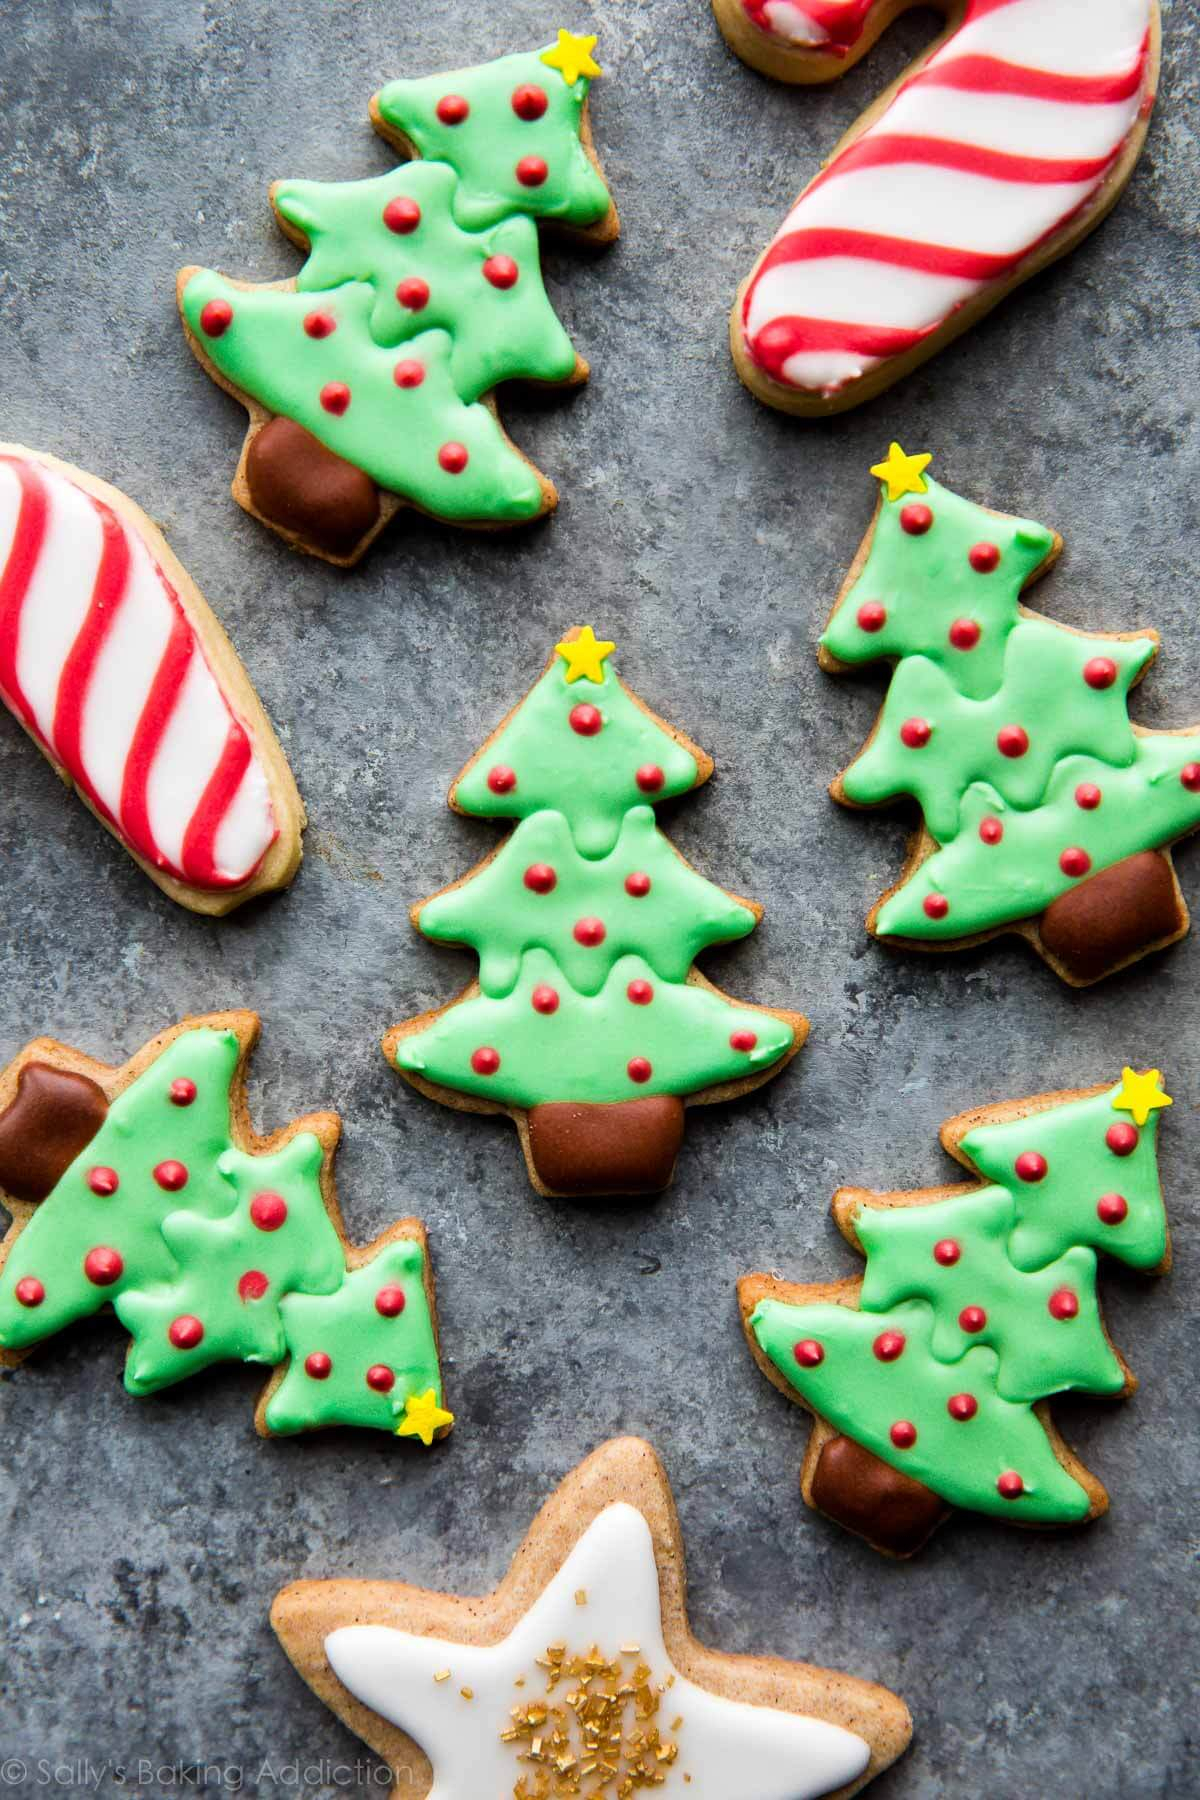 10 Amazing Easy Sugar Cookie Decorating Ideas how to decorate sugar cookies sallys baking addiction 1 2021